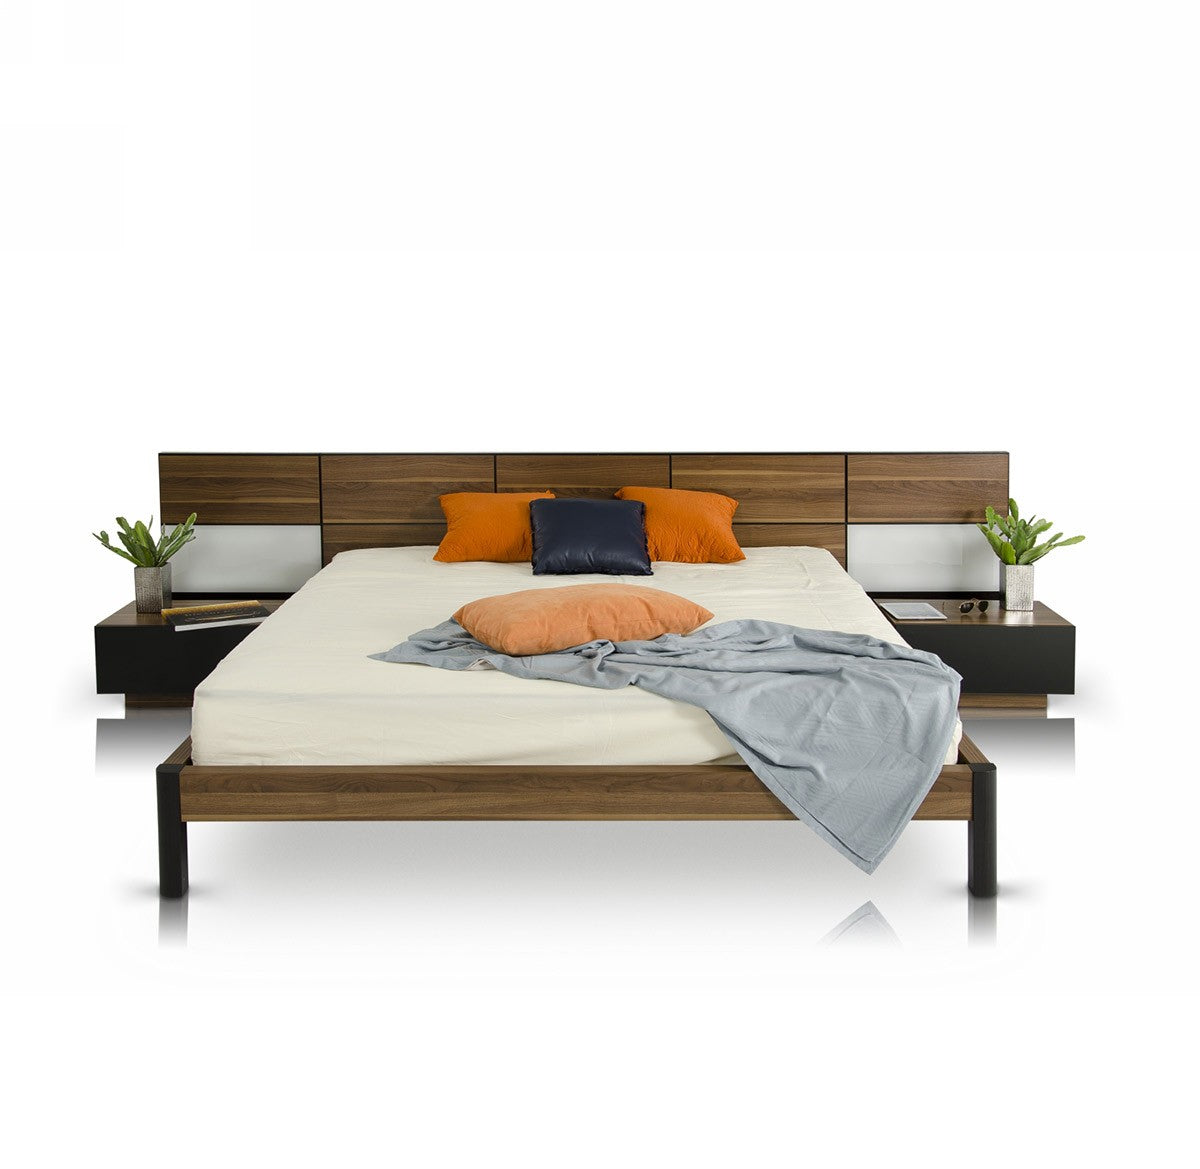 Modrest Rondo Queen Modern Bed with Nightstands